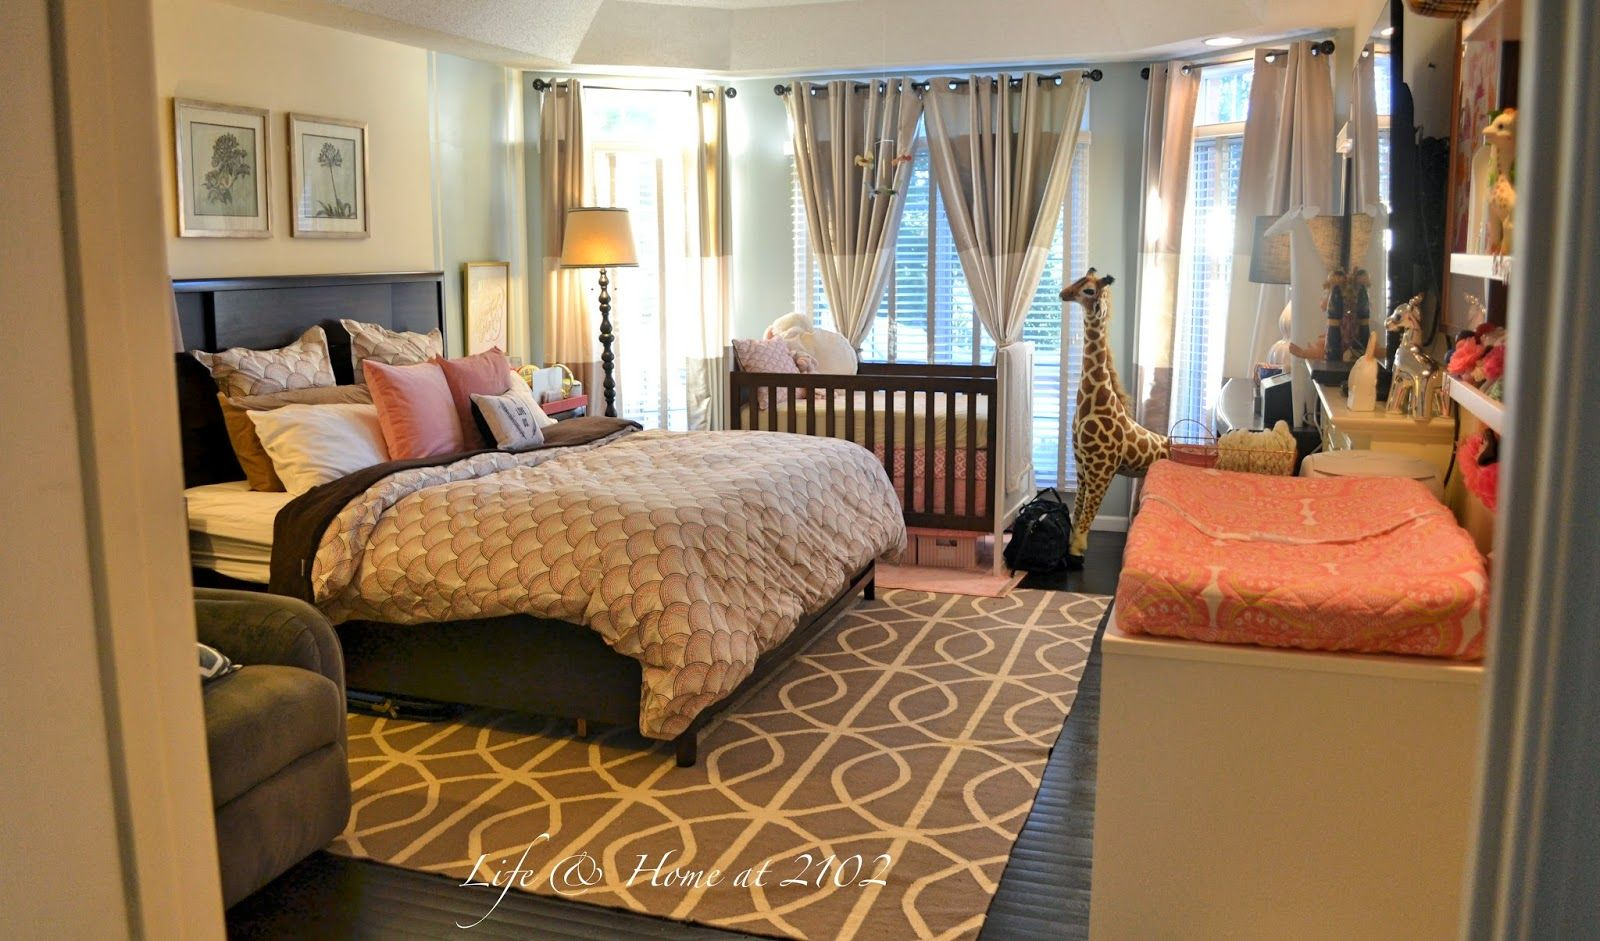 Best Life Home At 2102 Master Bedroom With Nursery Reveal 640 x 480